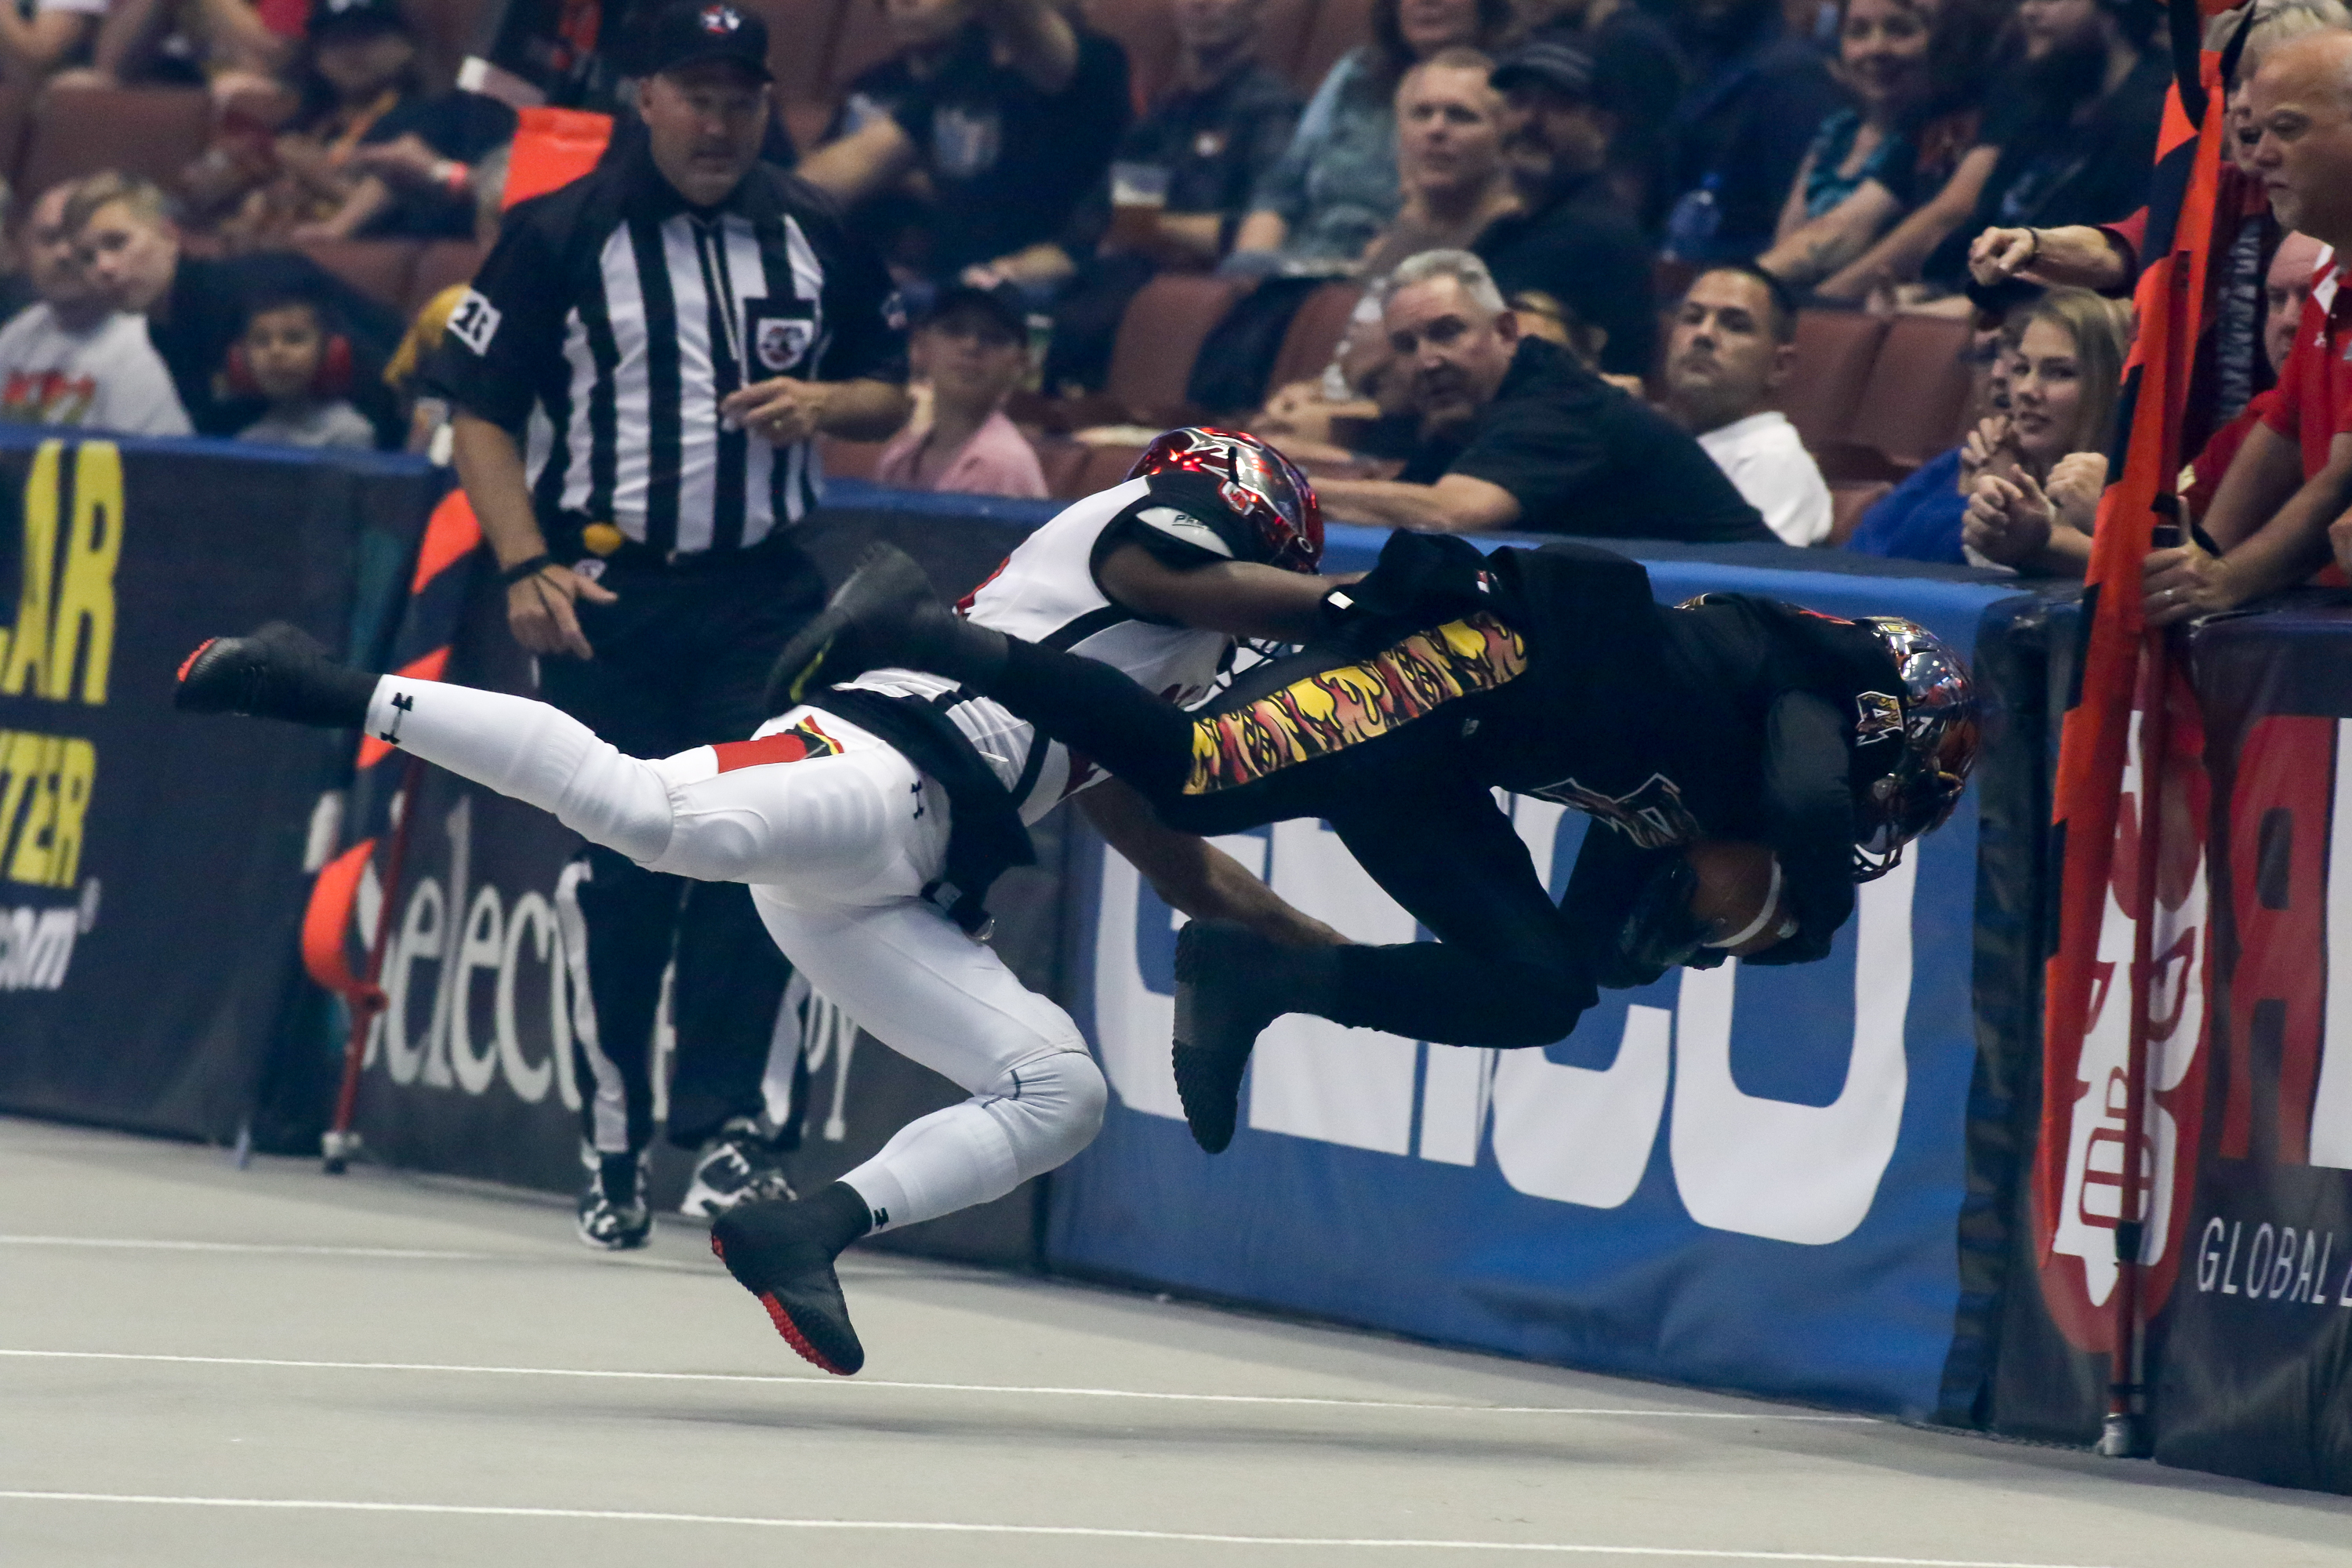 AFL 2016 Jacksonville Sharks vs LA KISS Opening Night game action in the first half at Honda Center in Anaheim, CA. (Photo by Jevone Moore/Full Image 360)